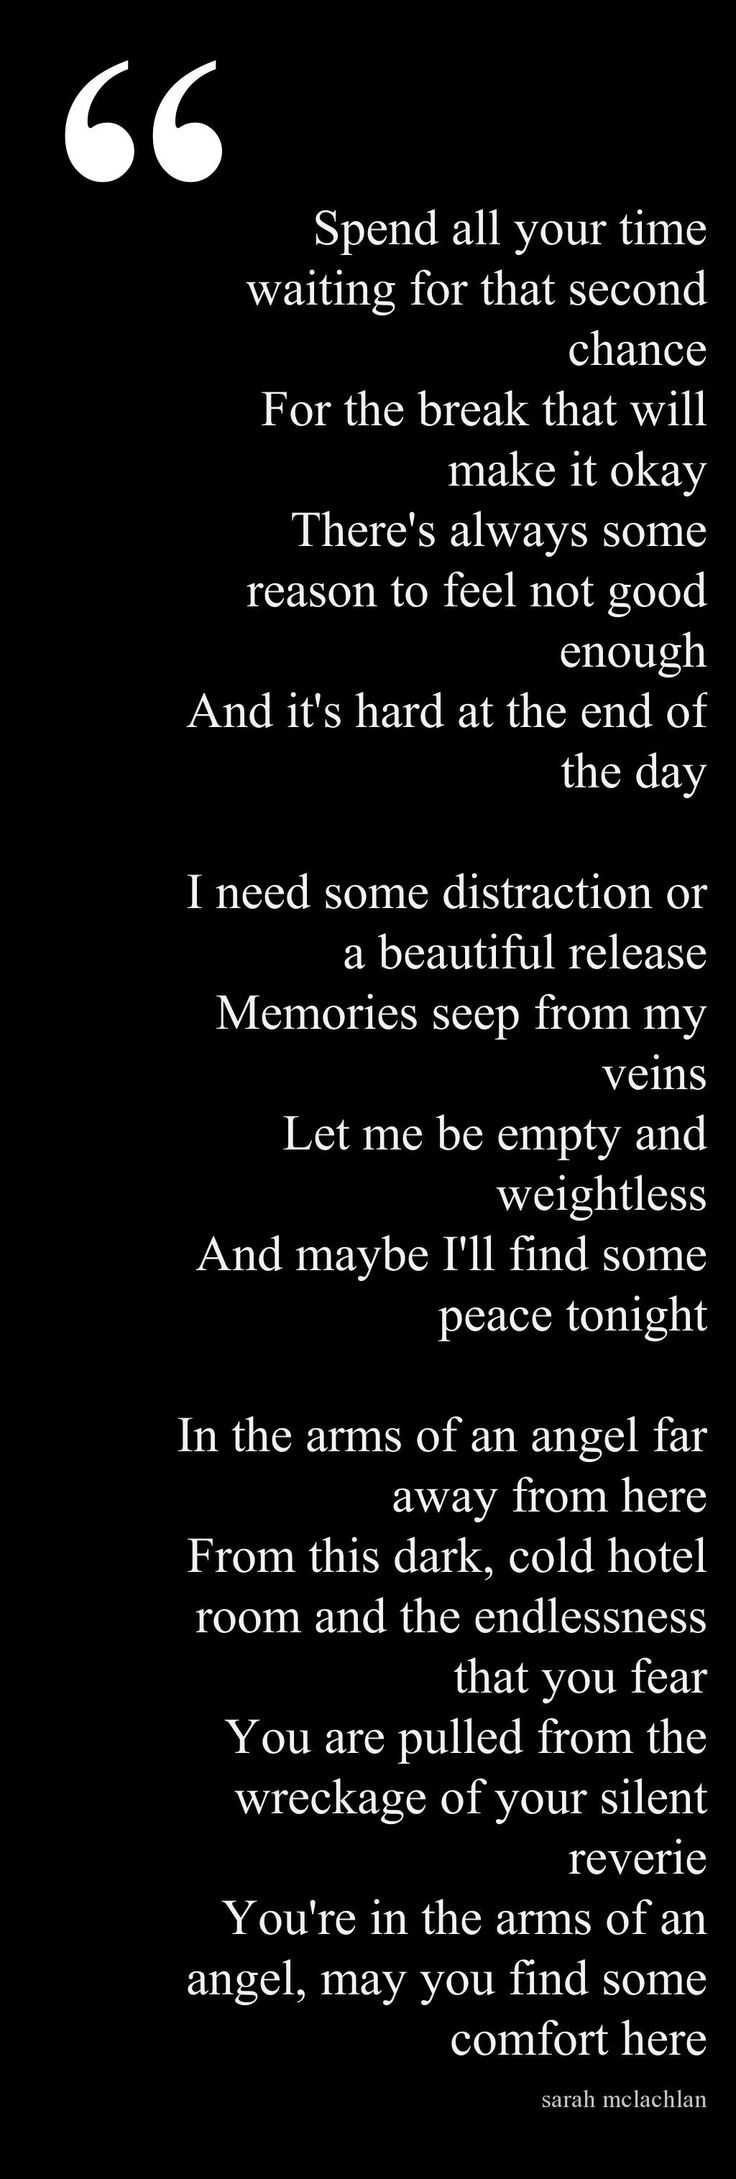 In the Arms of the Angels...Sarah McLachlan  ...for Ray in heaven♥